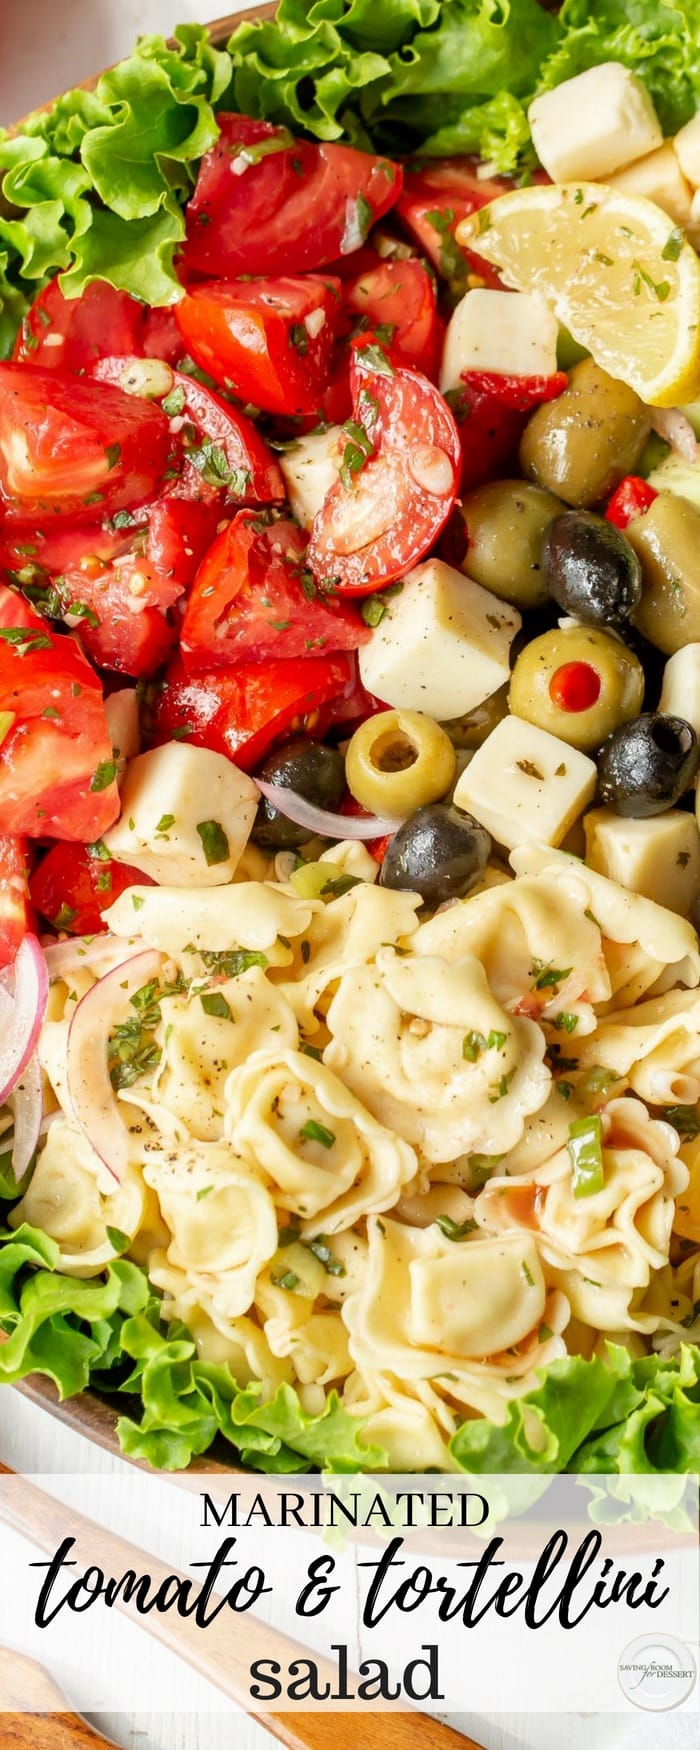 Marinated Tomato & Tortellini Salad with cucumbers, onion, olives, avocado, cheese and fresh garden herbs. Don't forget the crusty bread to soak up all the juices! #savingroomfordessert #salad #tortellini #tomatoes #heartysalad #tomatorecipes #tomatosalad